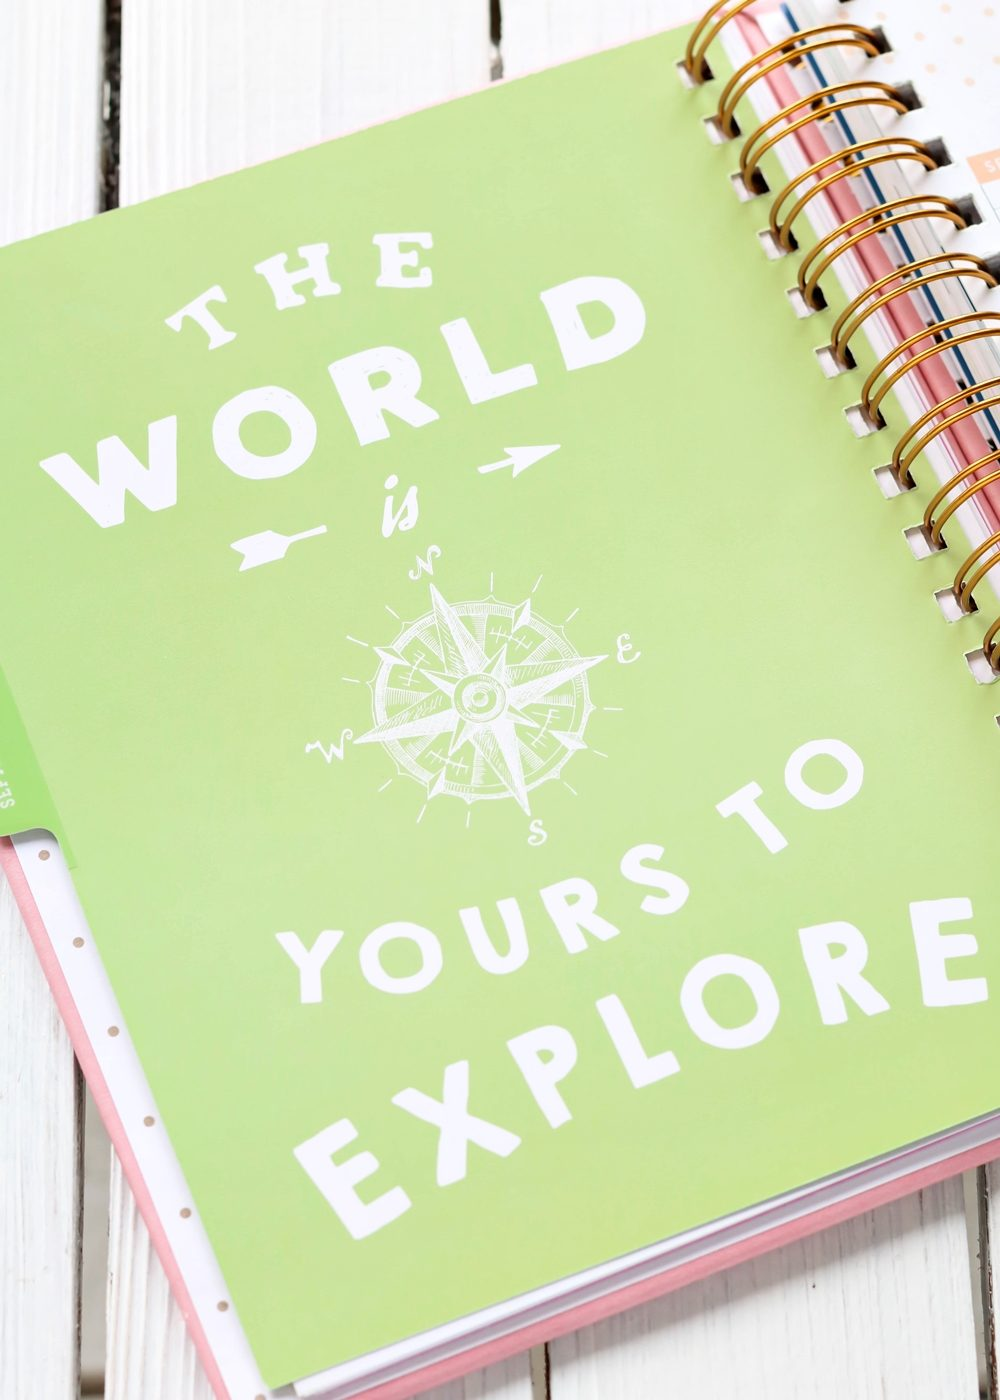 the-world-is-yours-to-explore